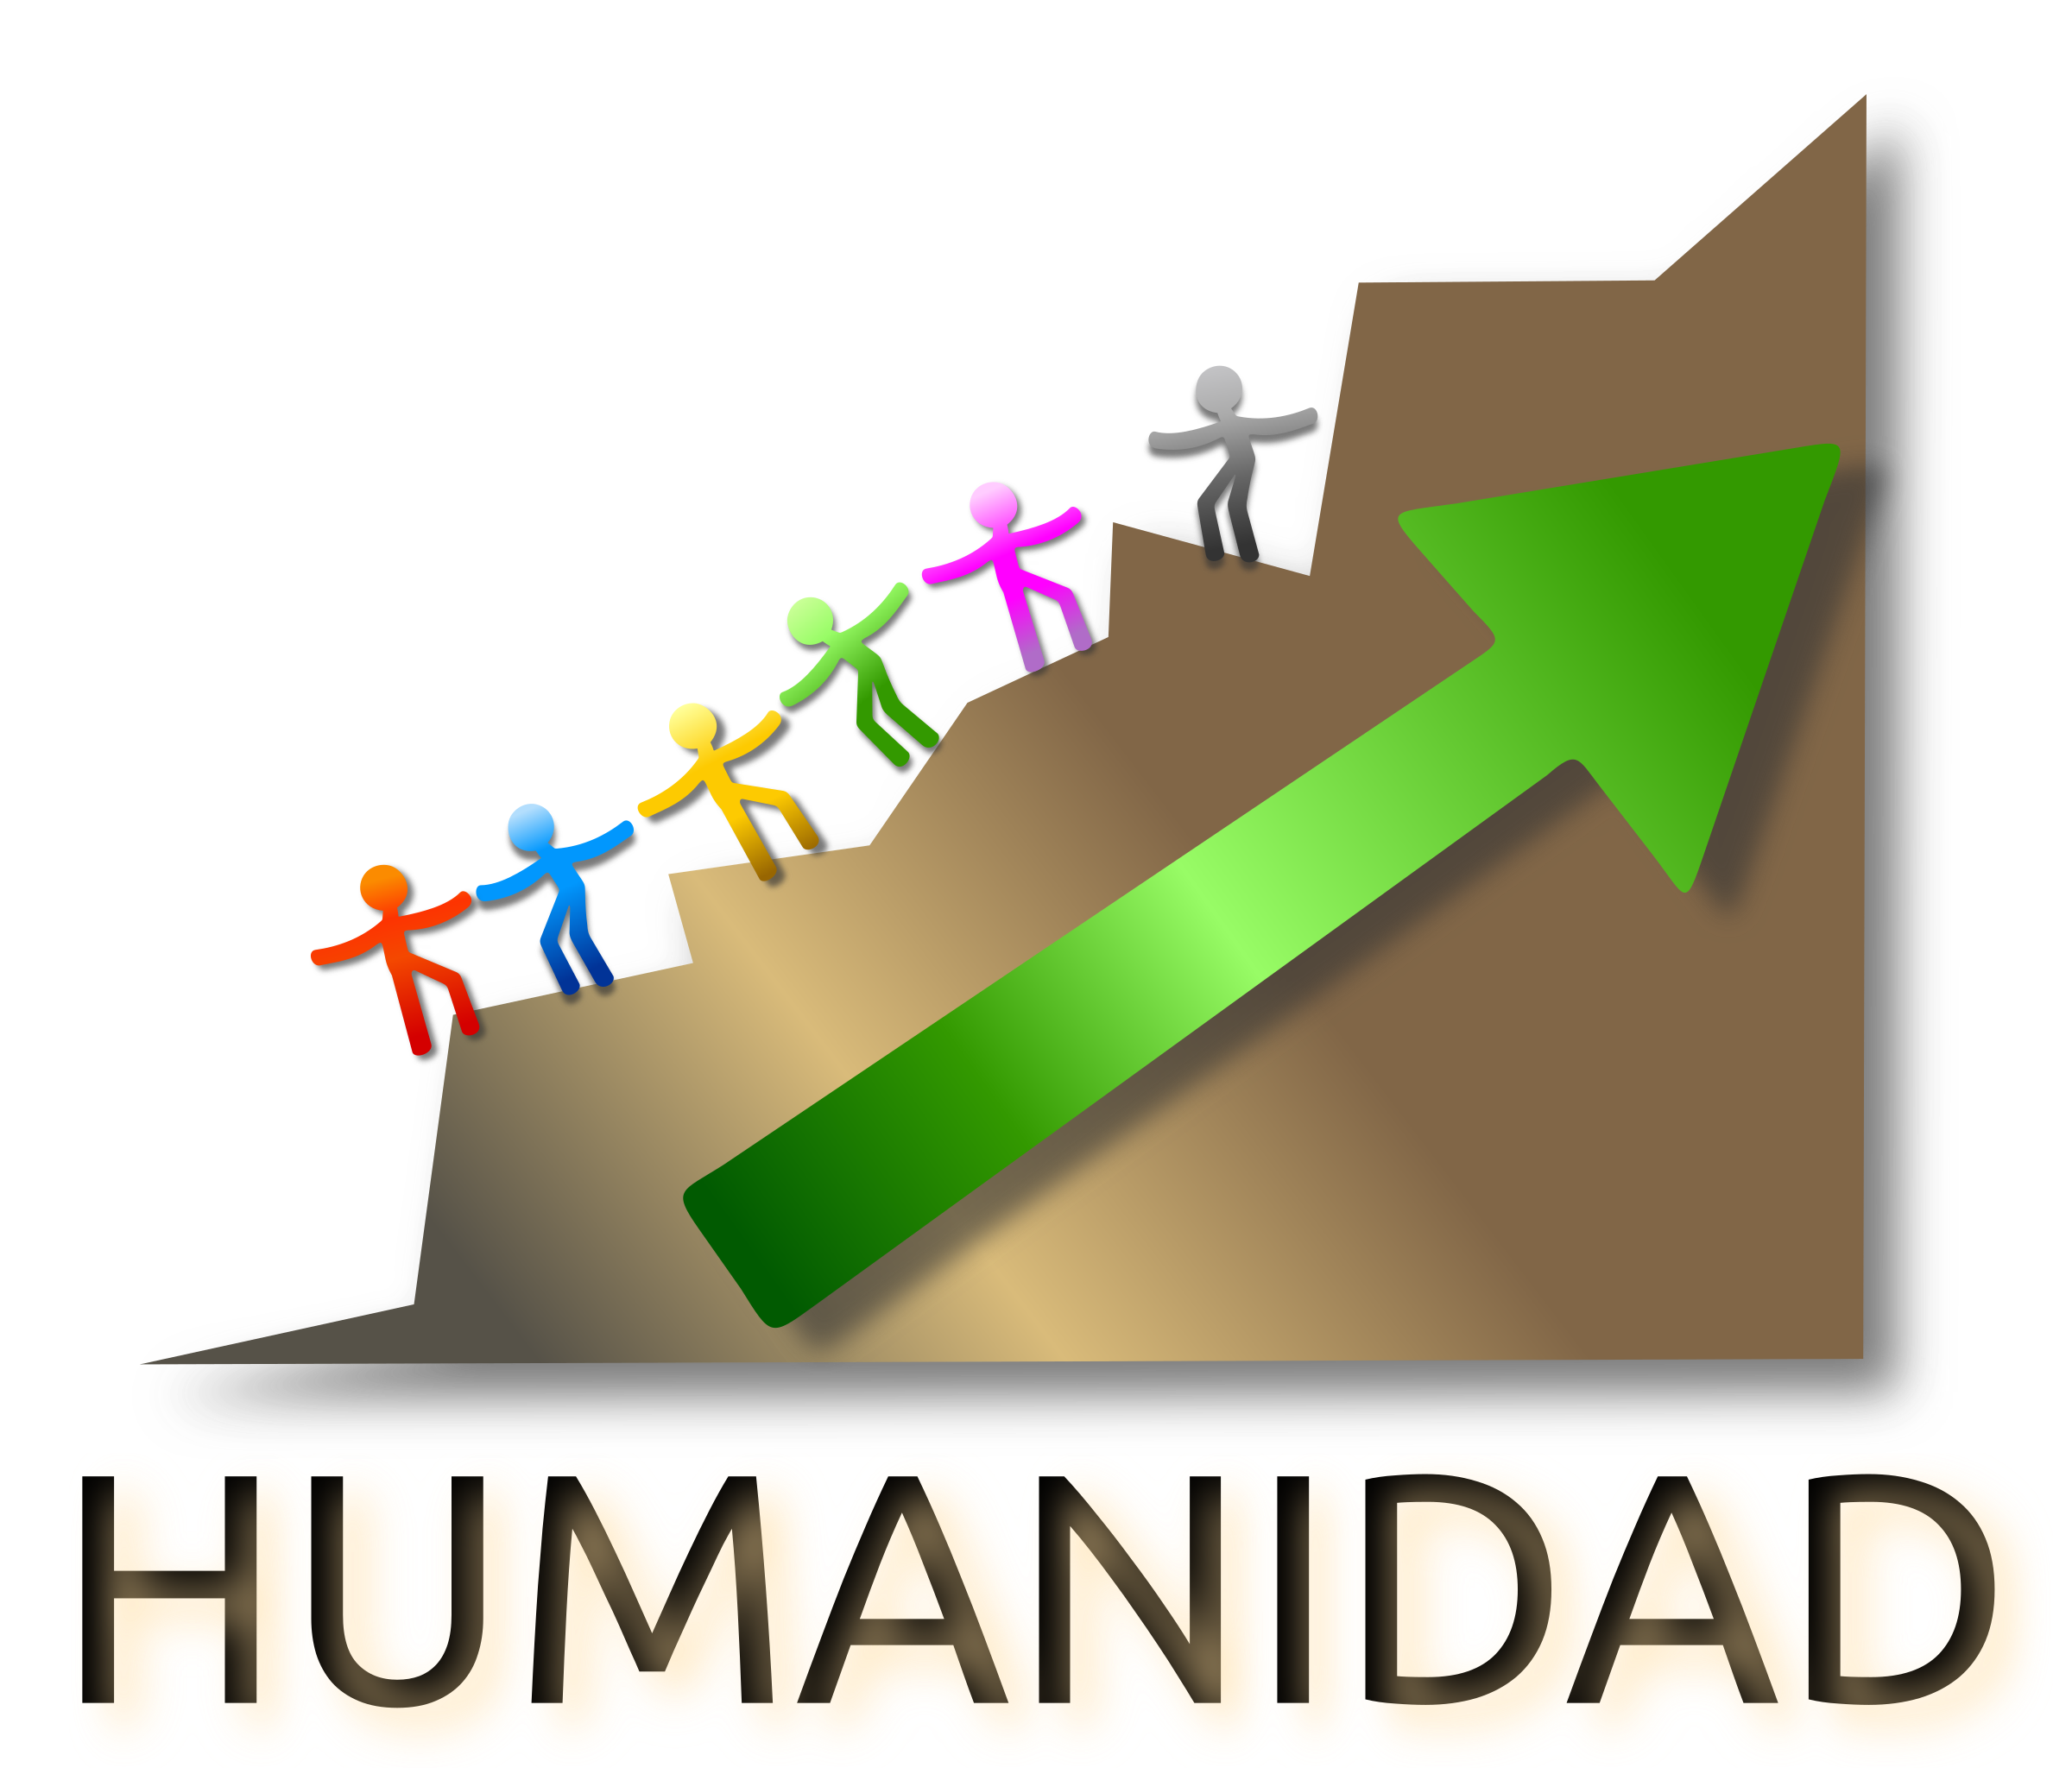 Humanidad by Merlin2525